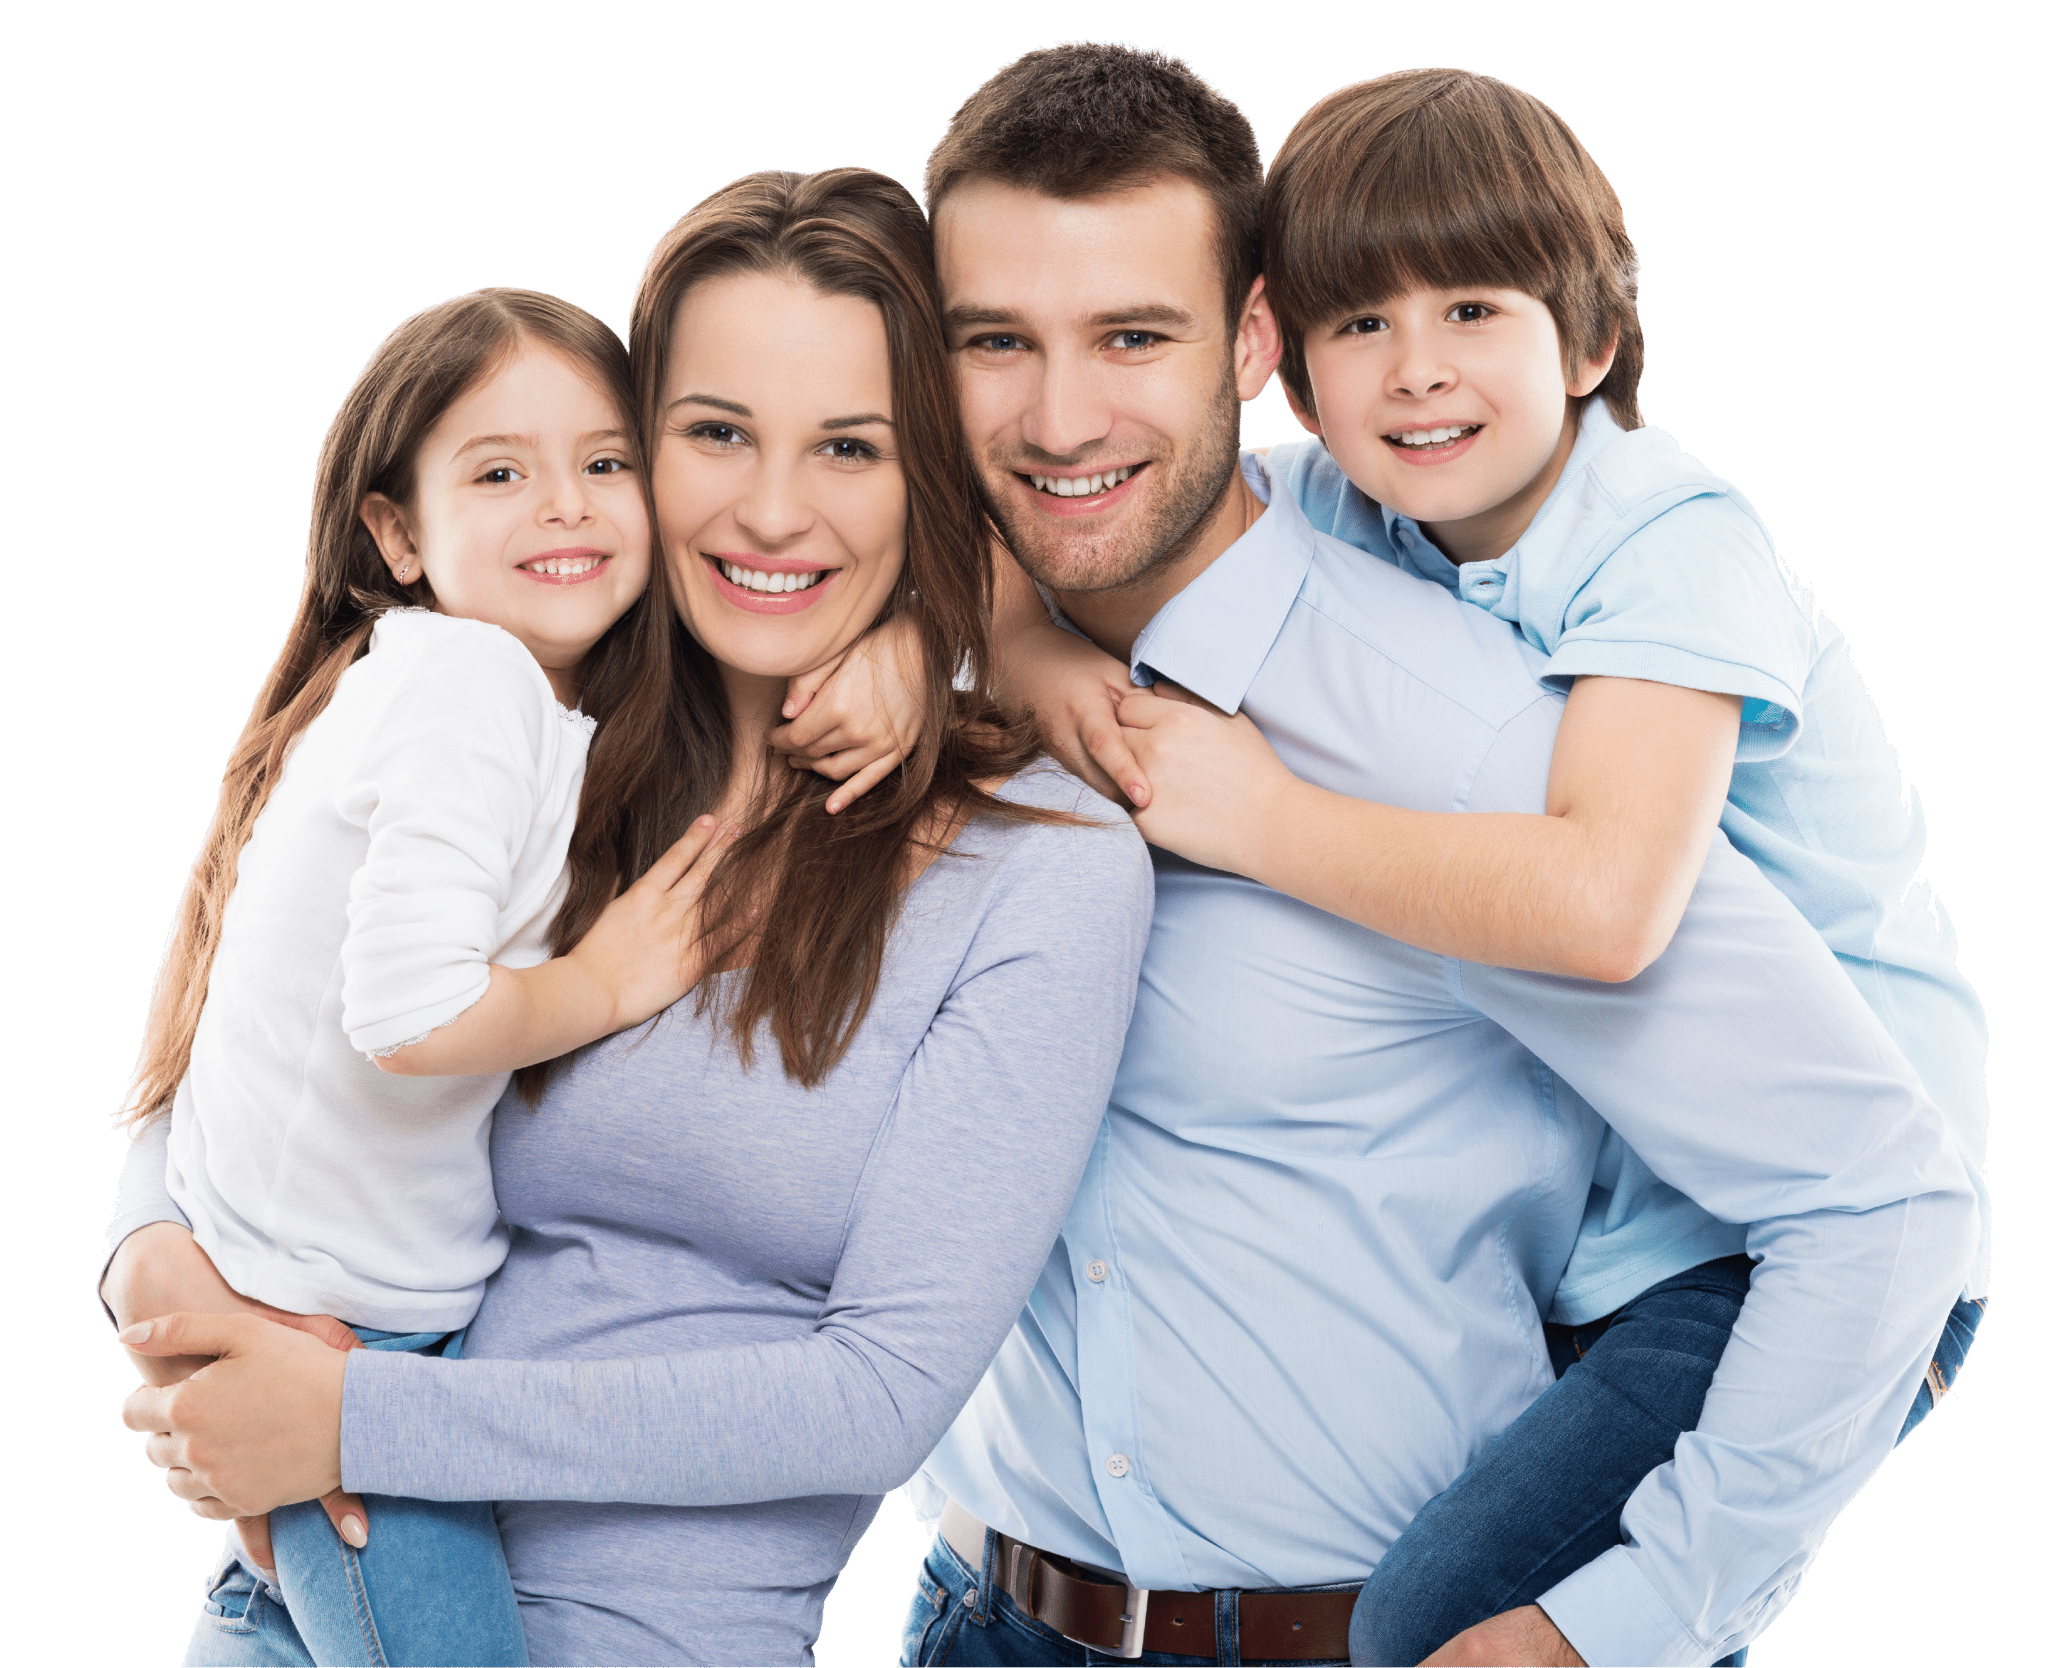 bigstock-Happy-family-89592521cropped-01